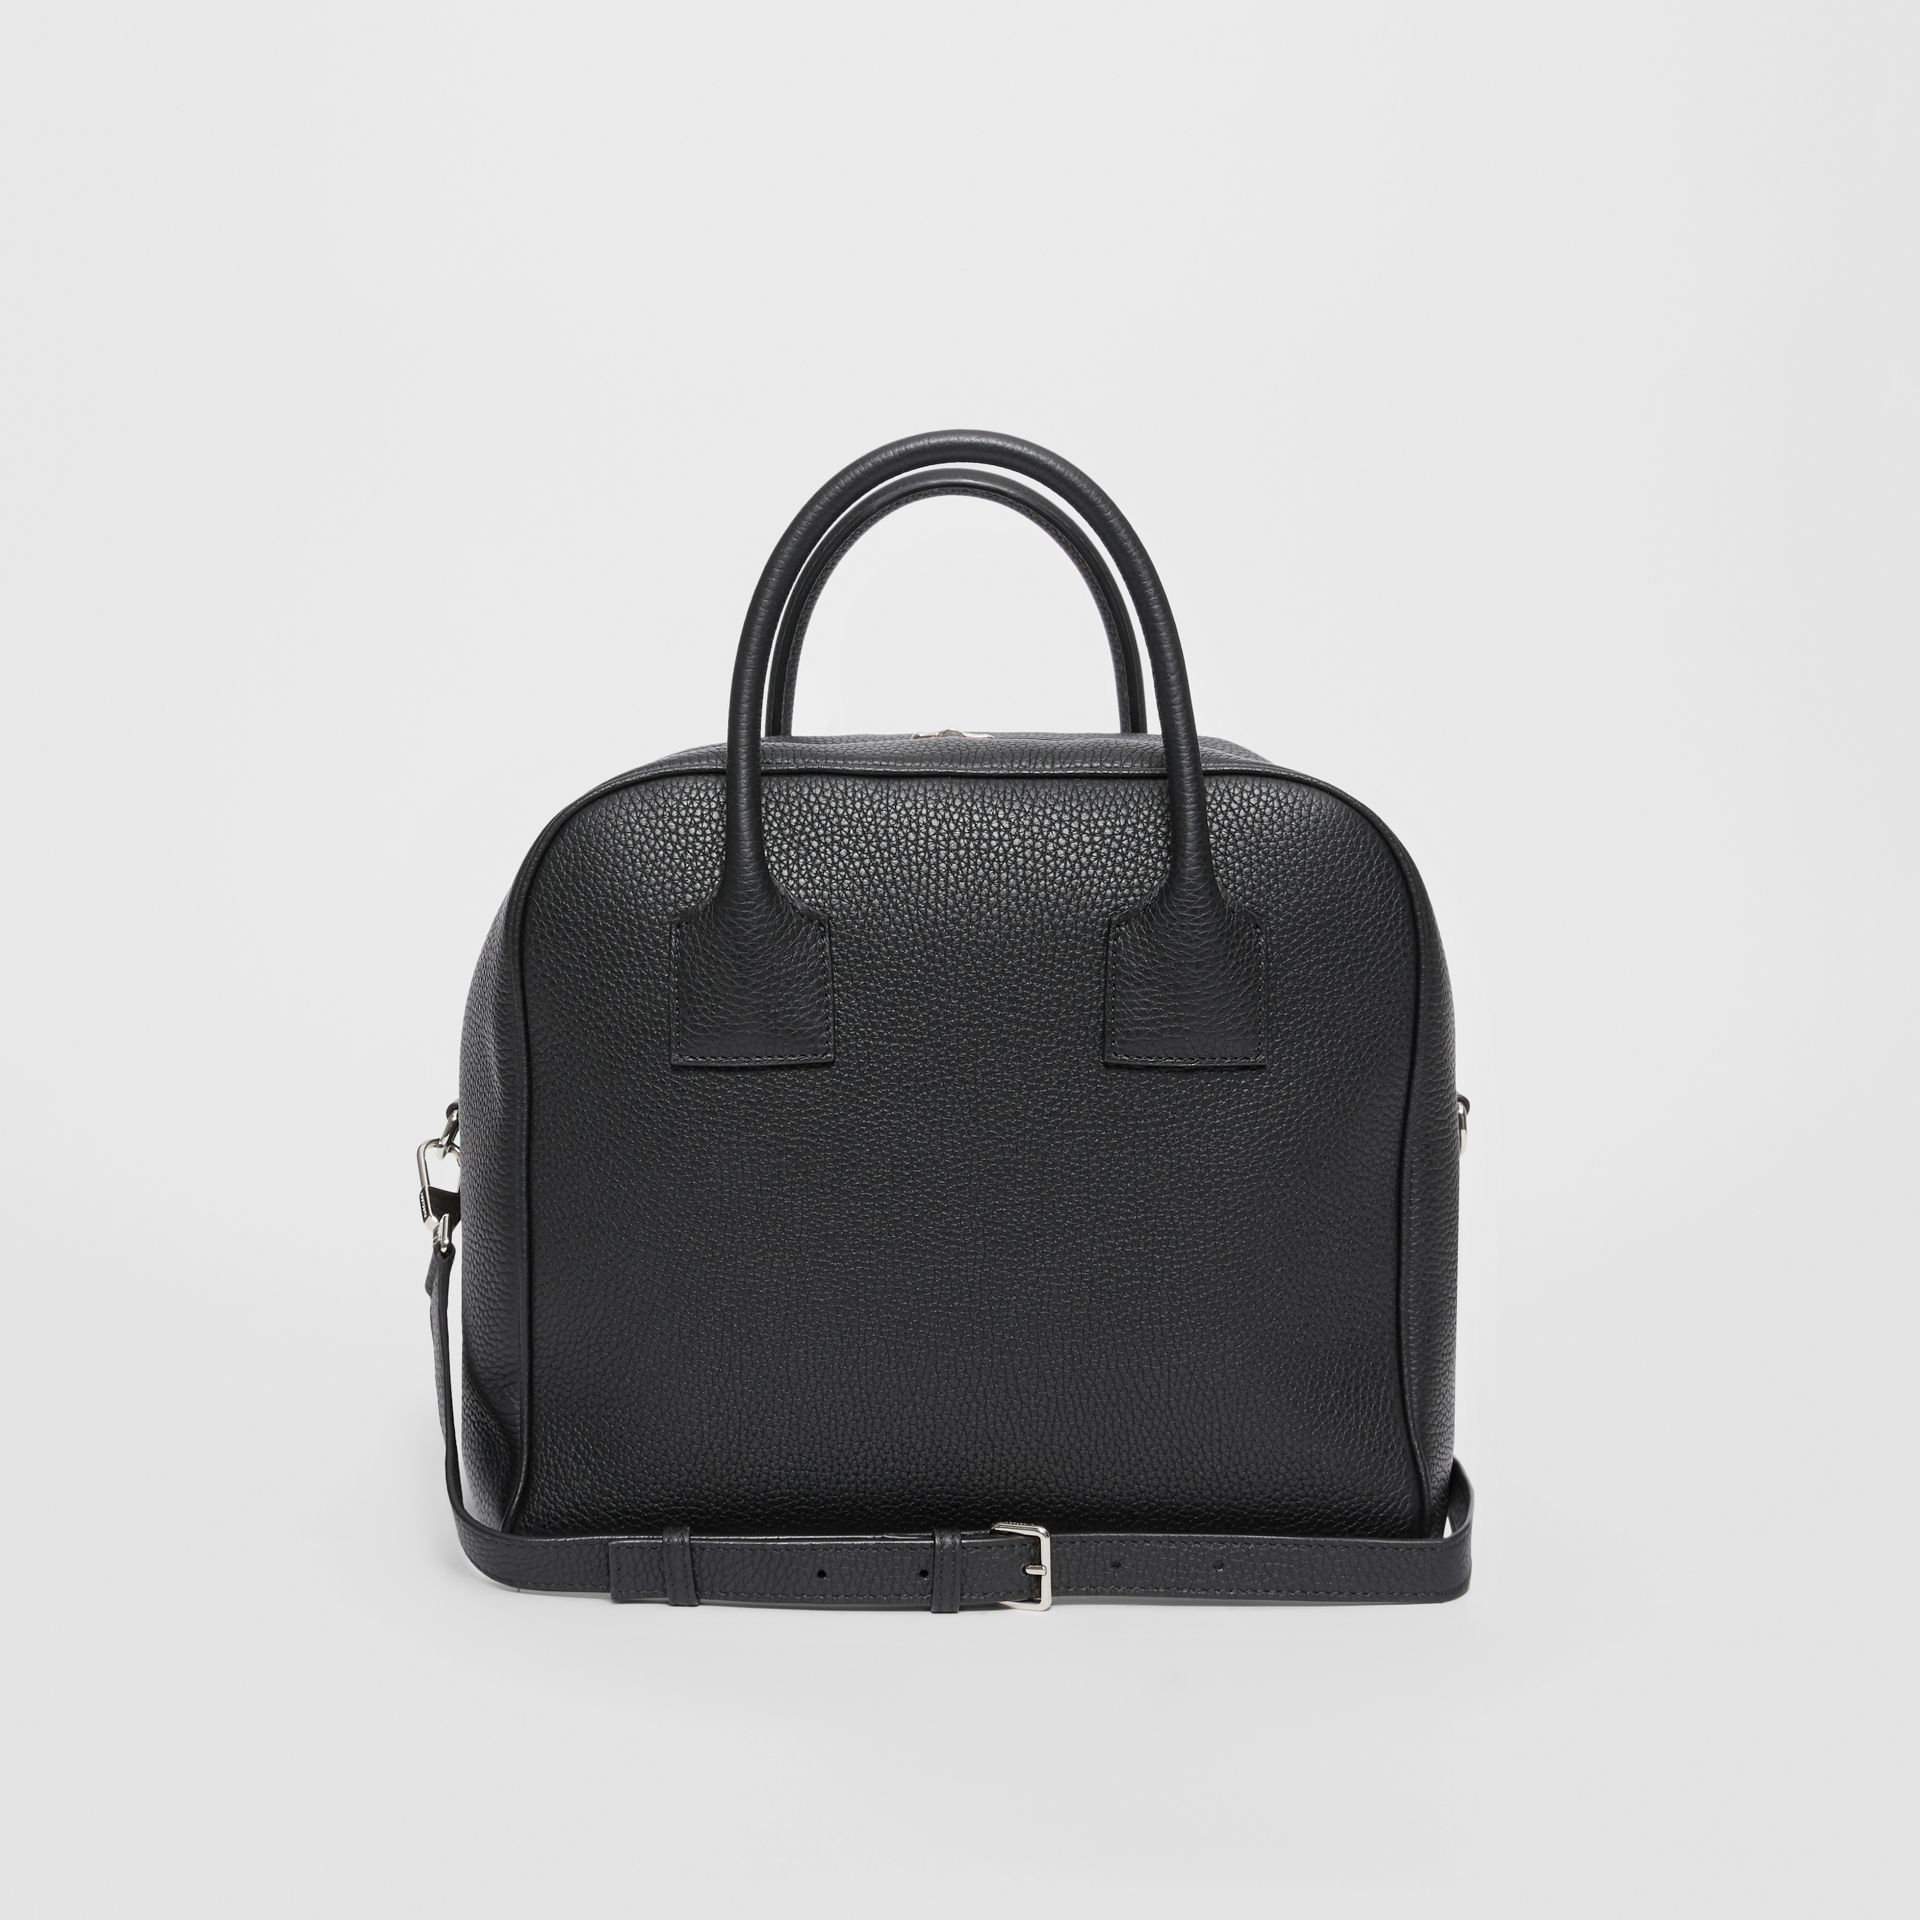 Medium Leather Cube Bag in Black - Women | Burberry Australia - gallery image 7